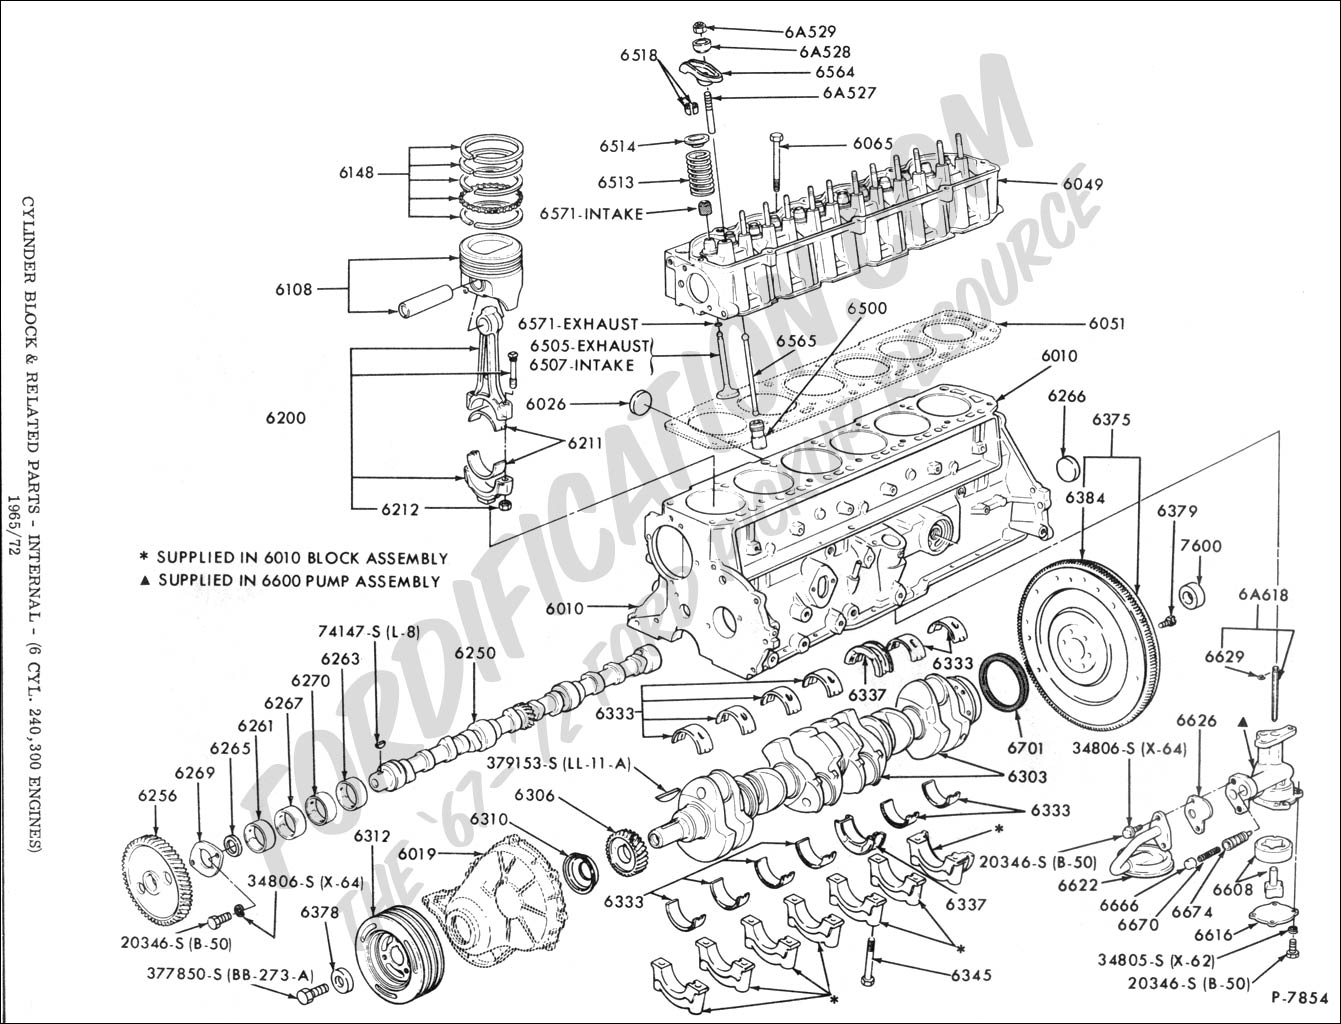 Ford 460 Distributor Parts Diagram. Ford. Wiring Diagram